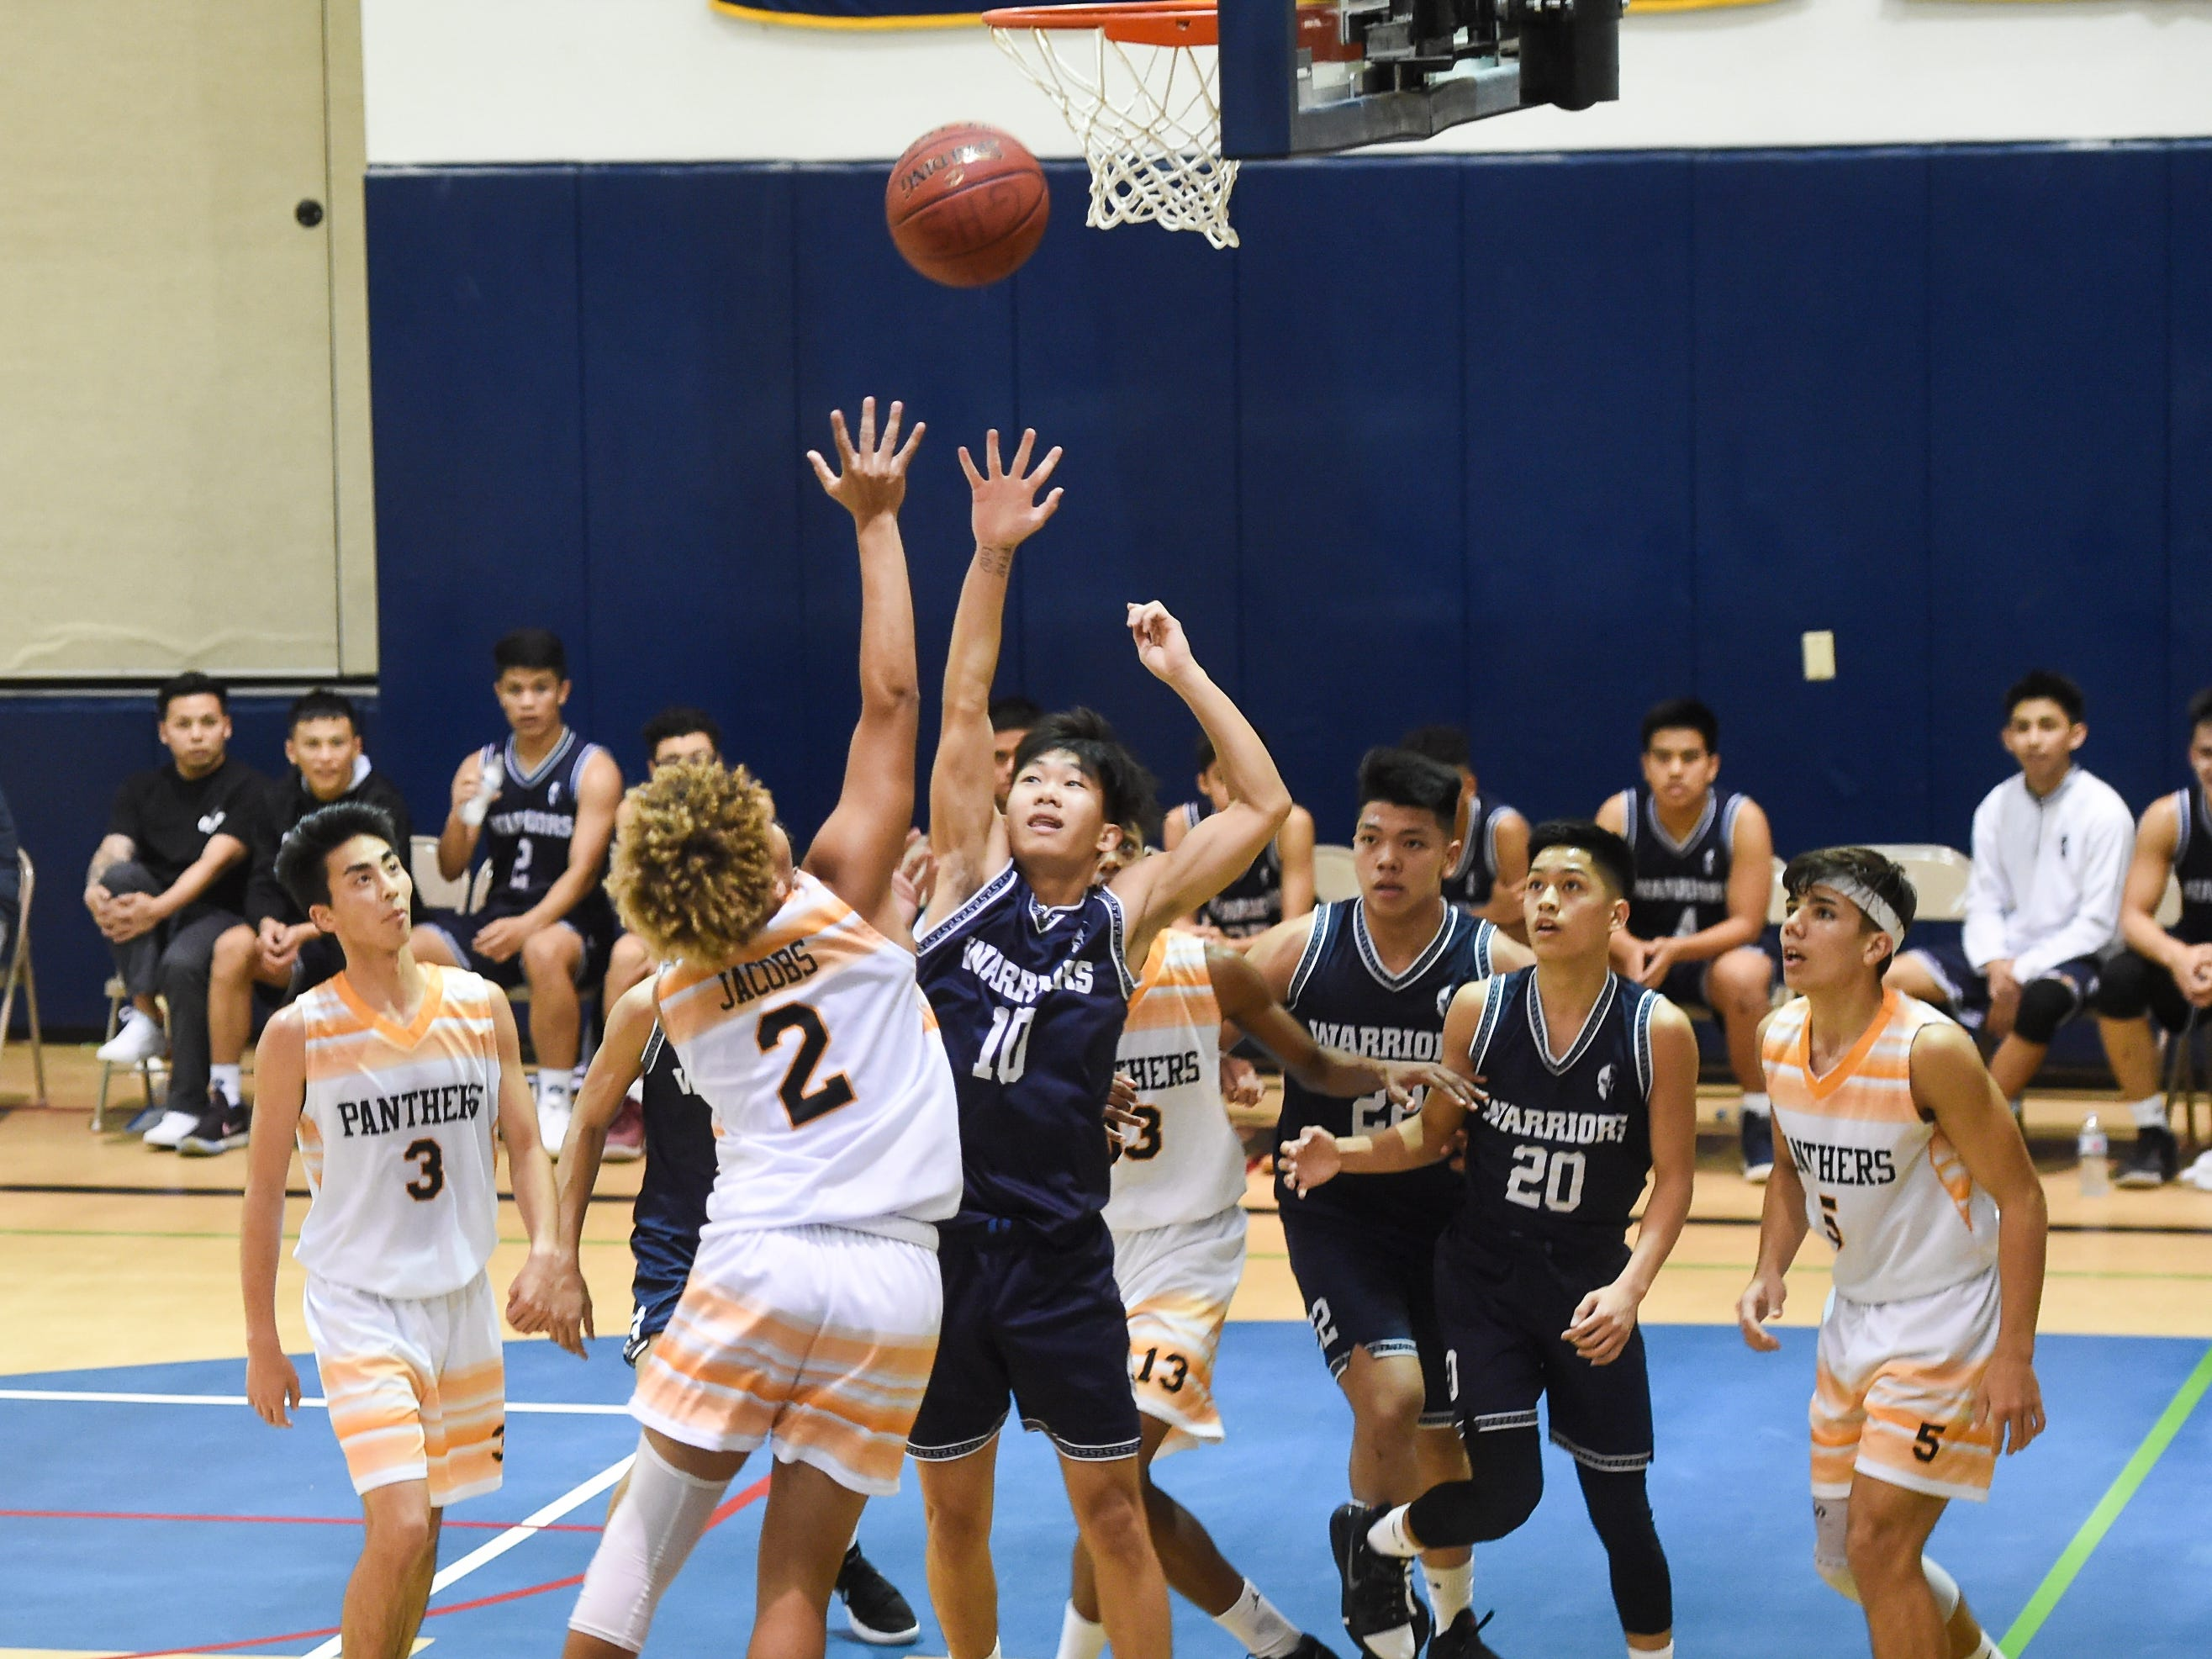 Guam High player Travon Jacobs (2) attempts a shot over St. Paul defenders during their IIAAG Boys' Basketball game at the Guam High School Gym, Feb. 5, 2019.